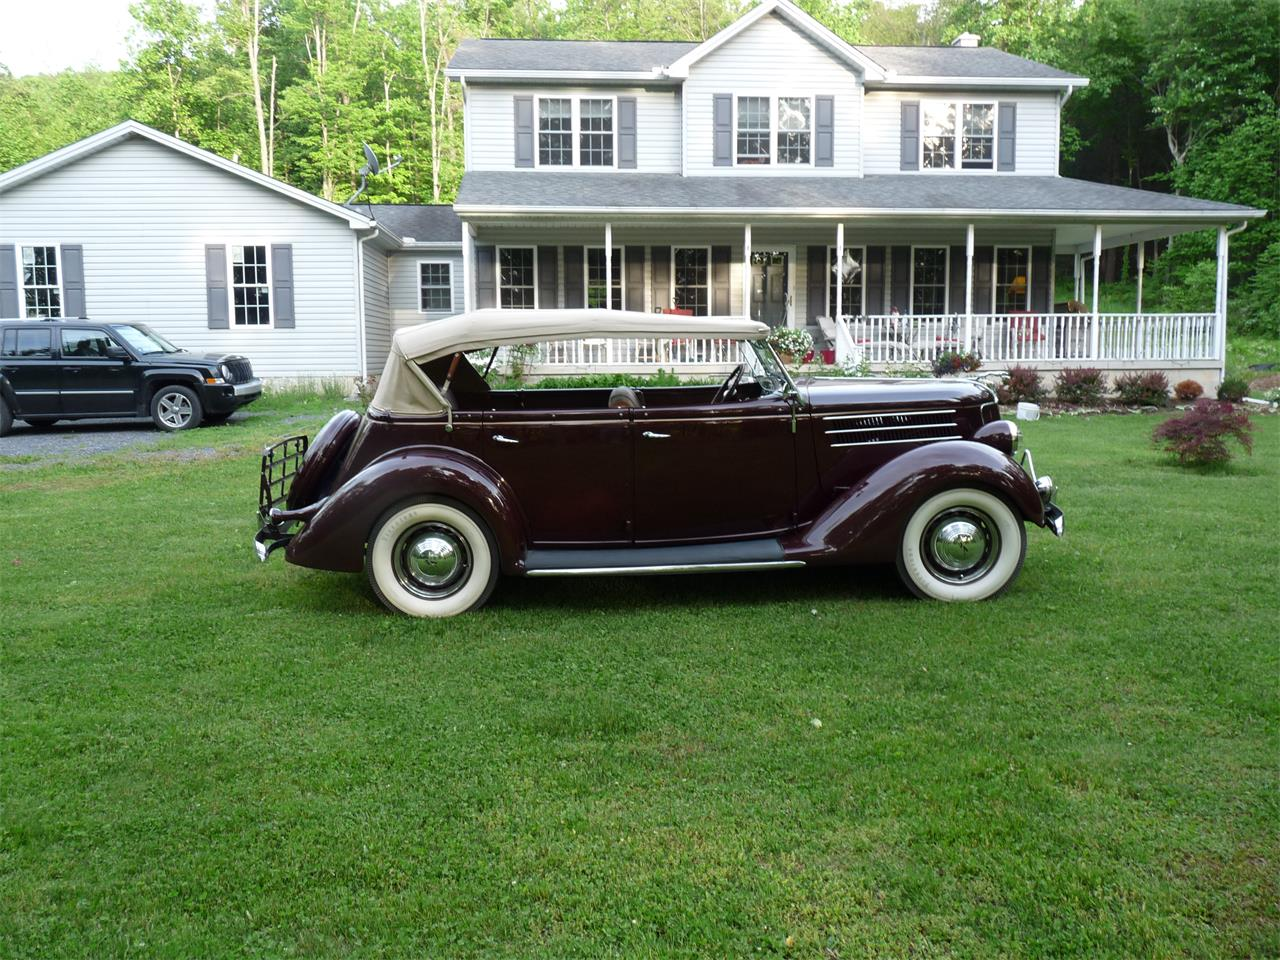 Large Picture of Classic '36 Ford Phaeton - $40,900.00 - BWBS